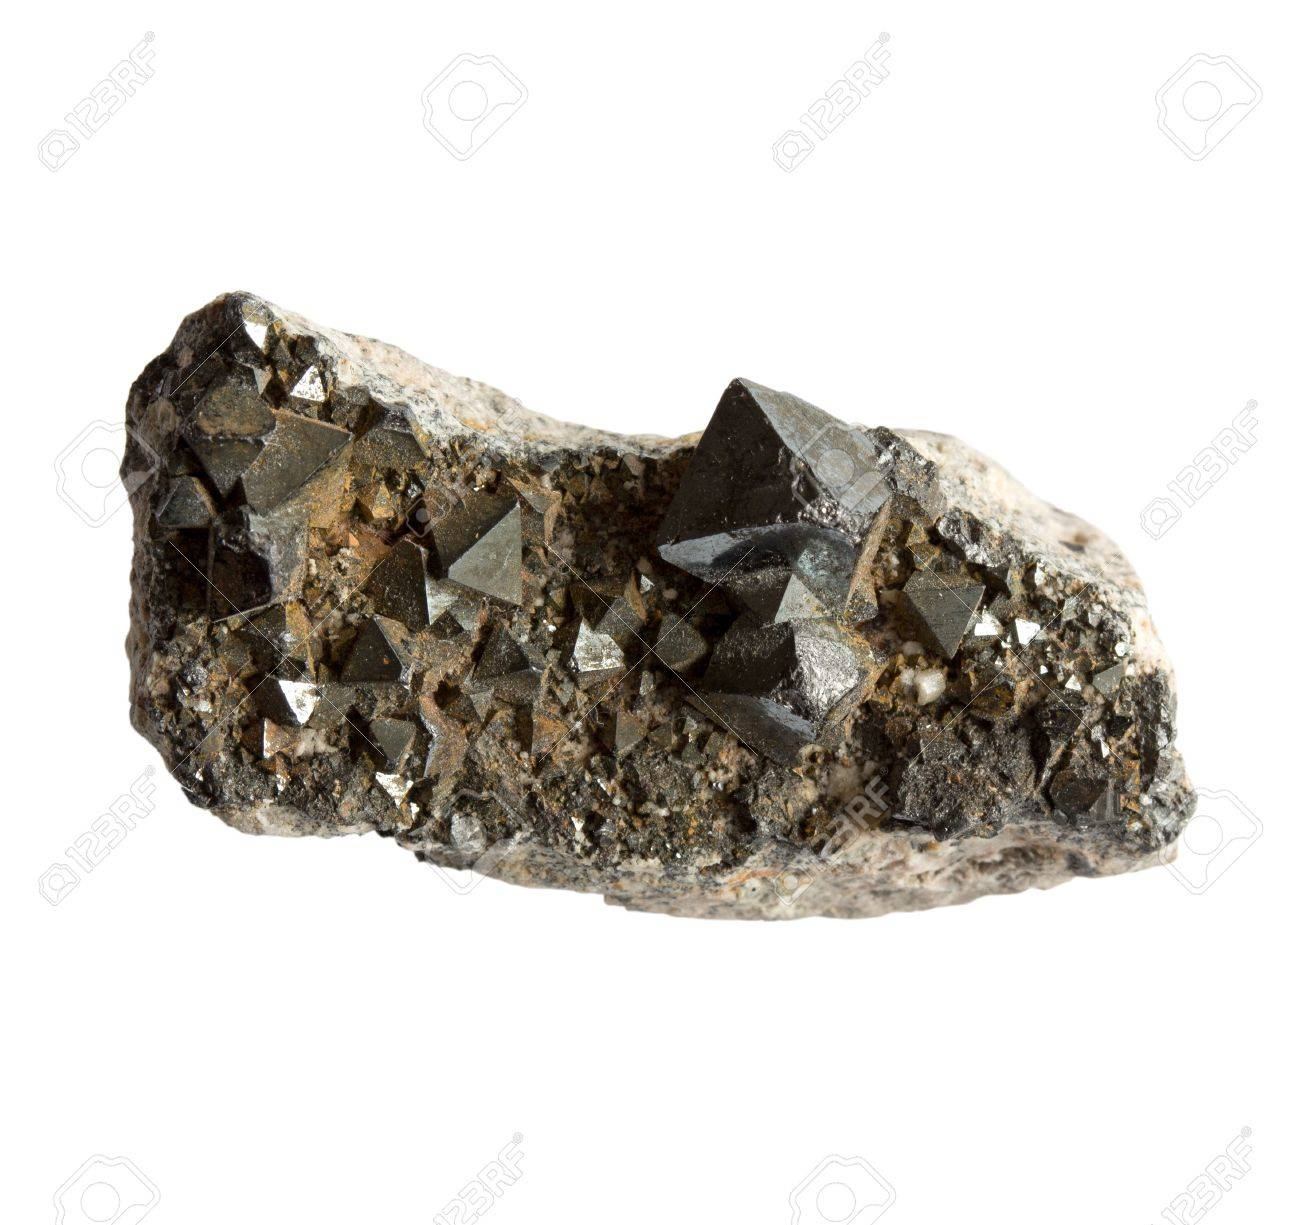 Magnetite crystals in the stone on a white background - 21249818